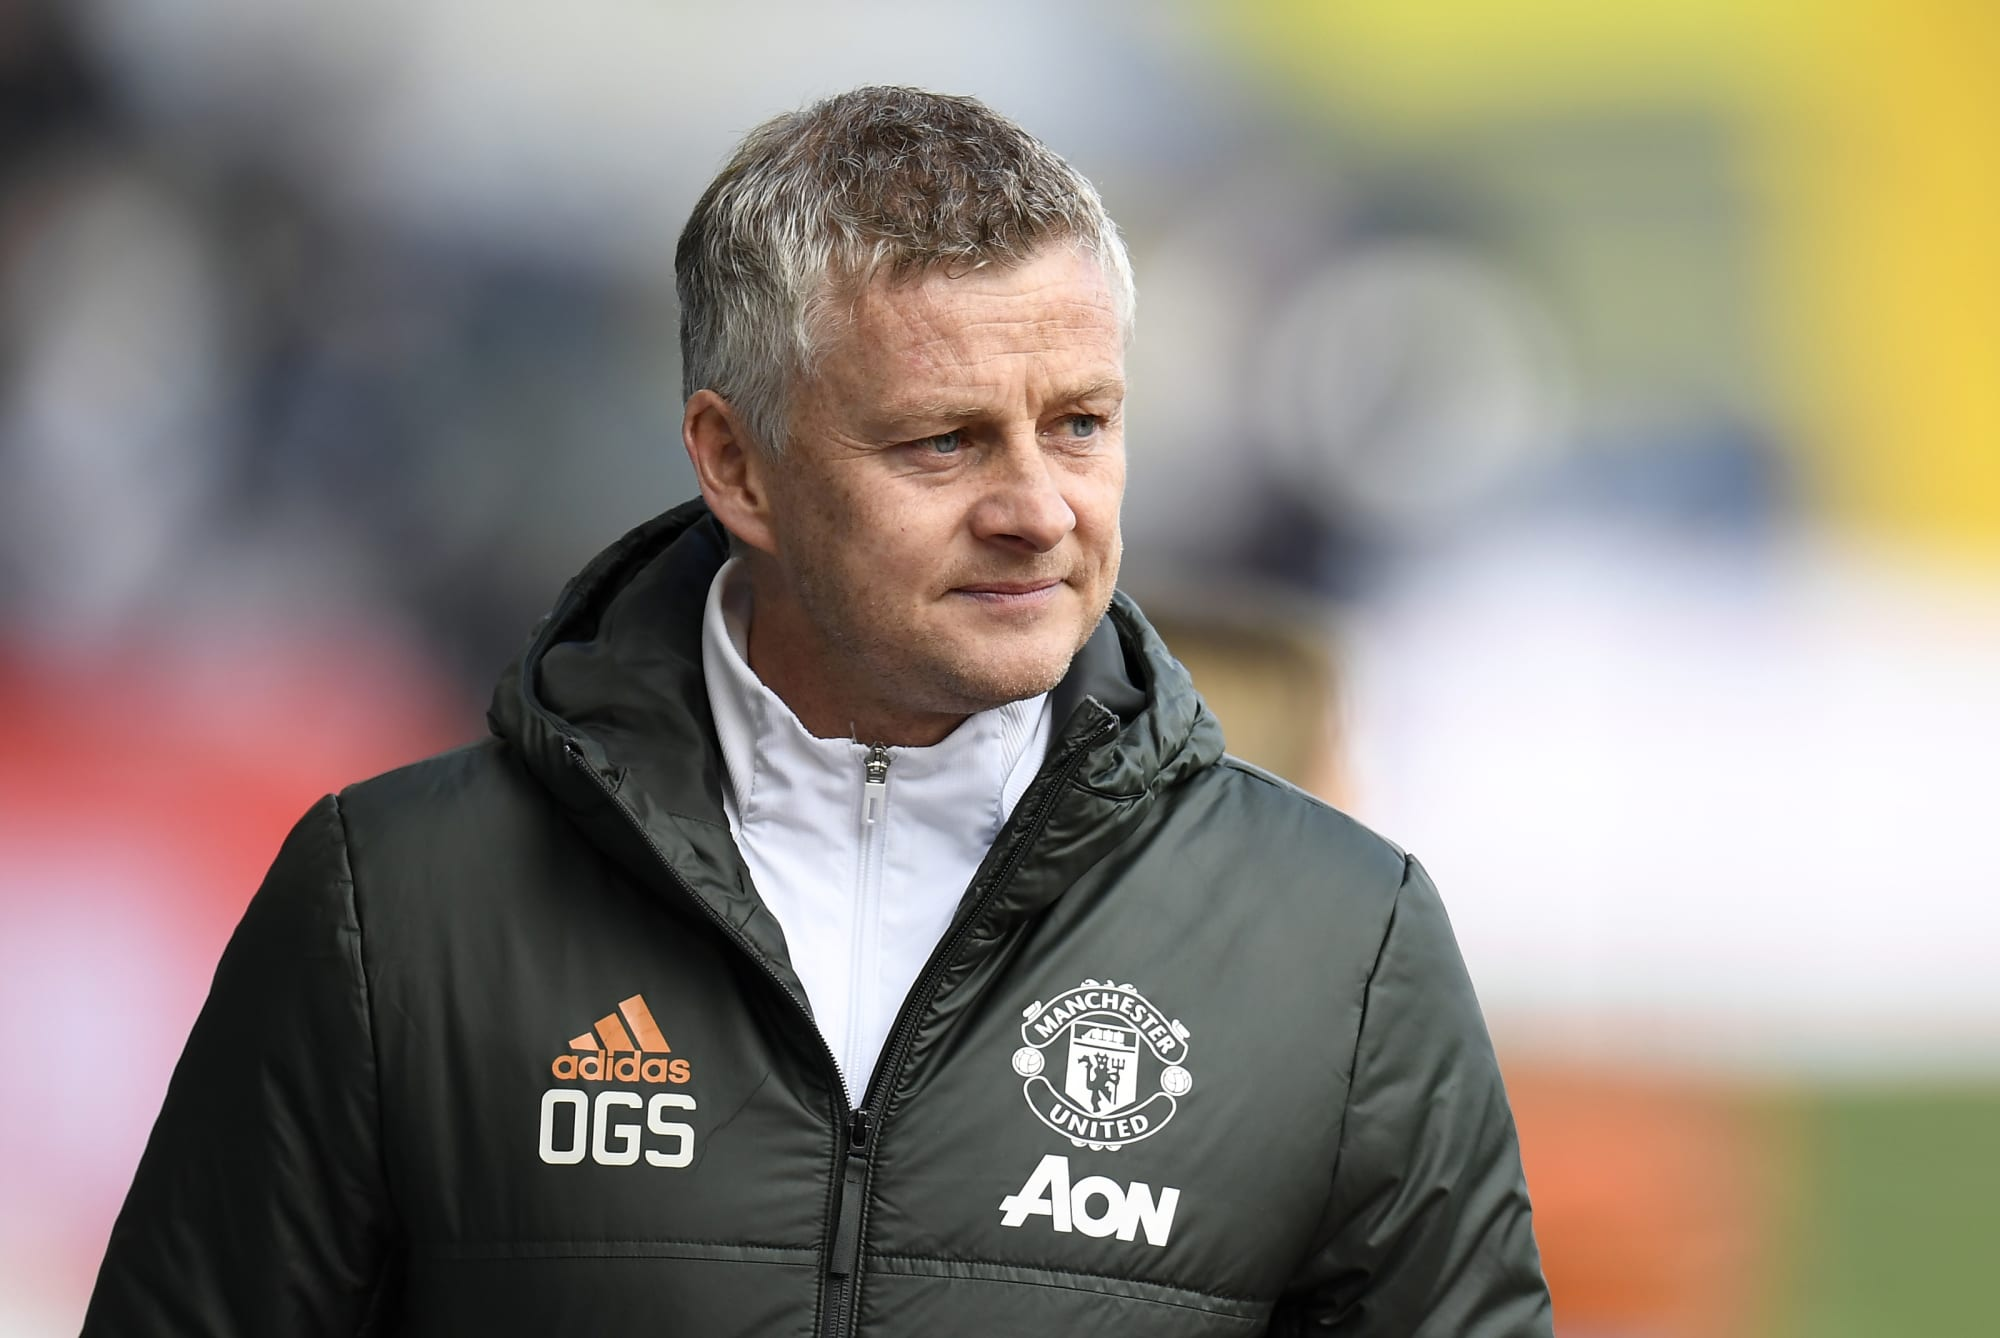 Promising youngster looks set to leave Manchester United this summer